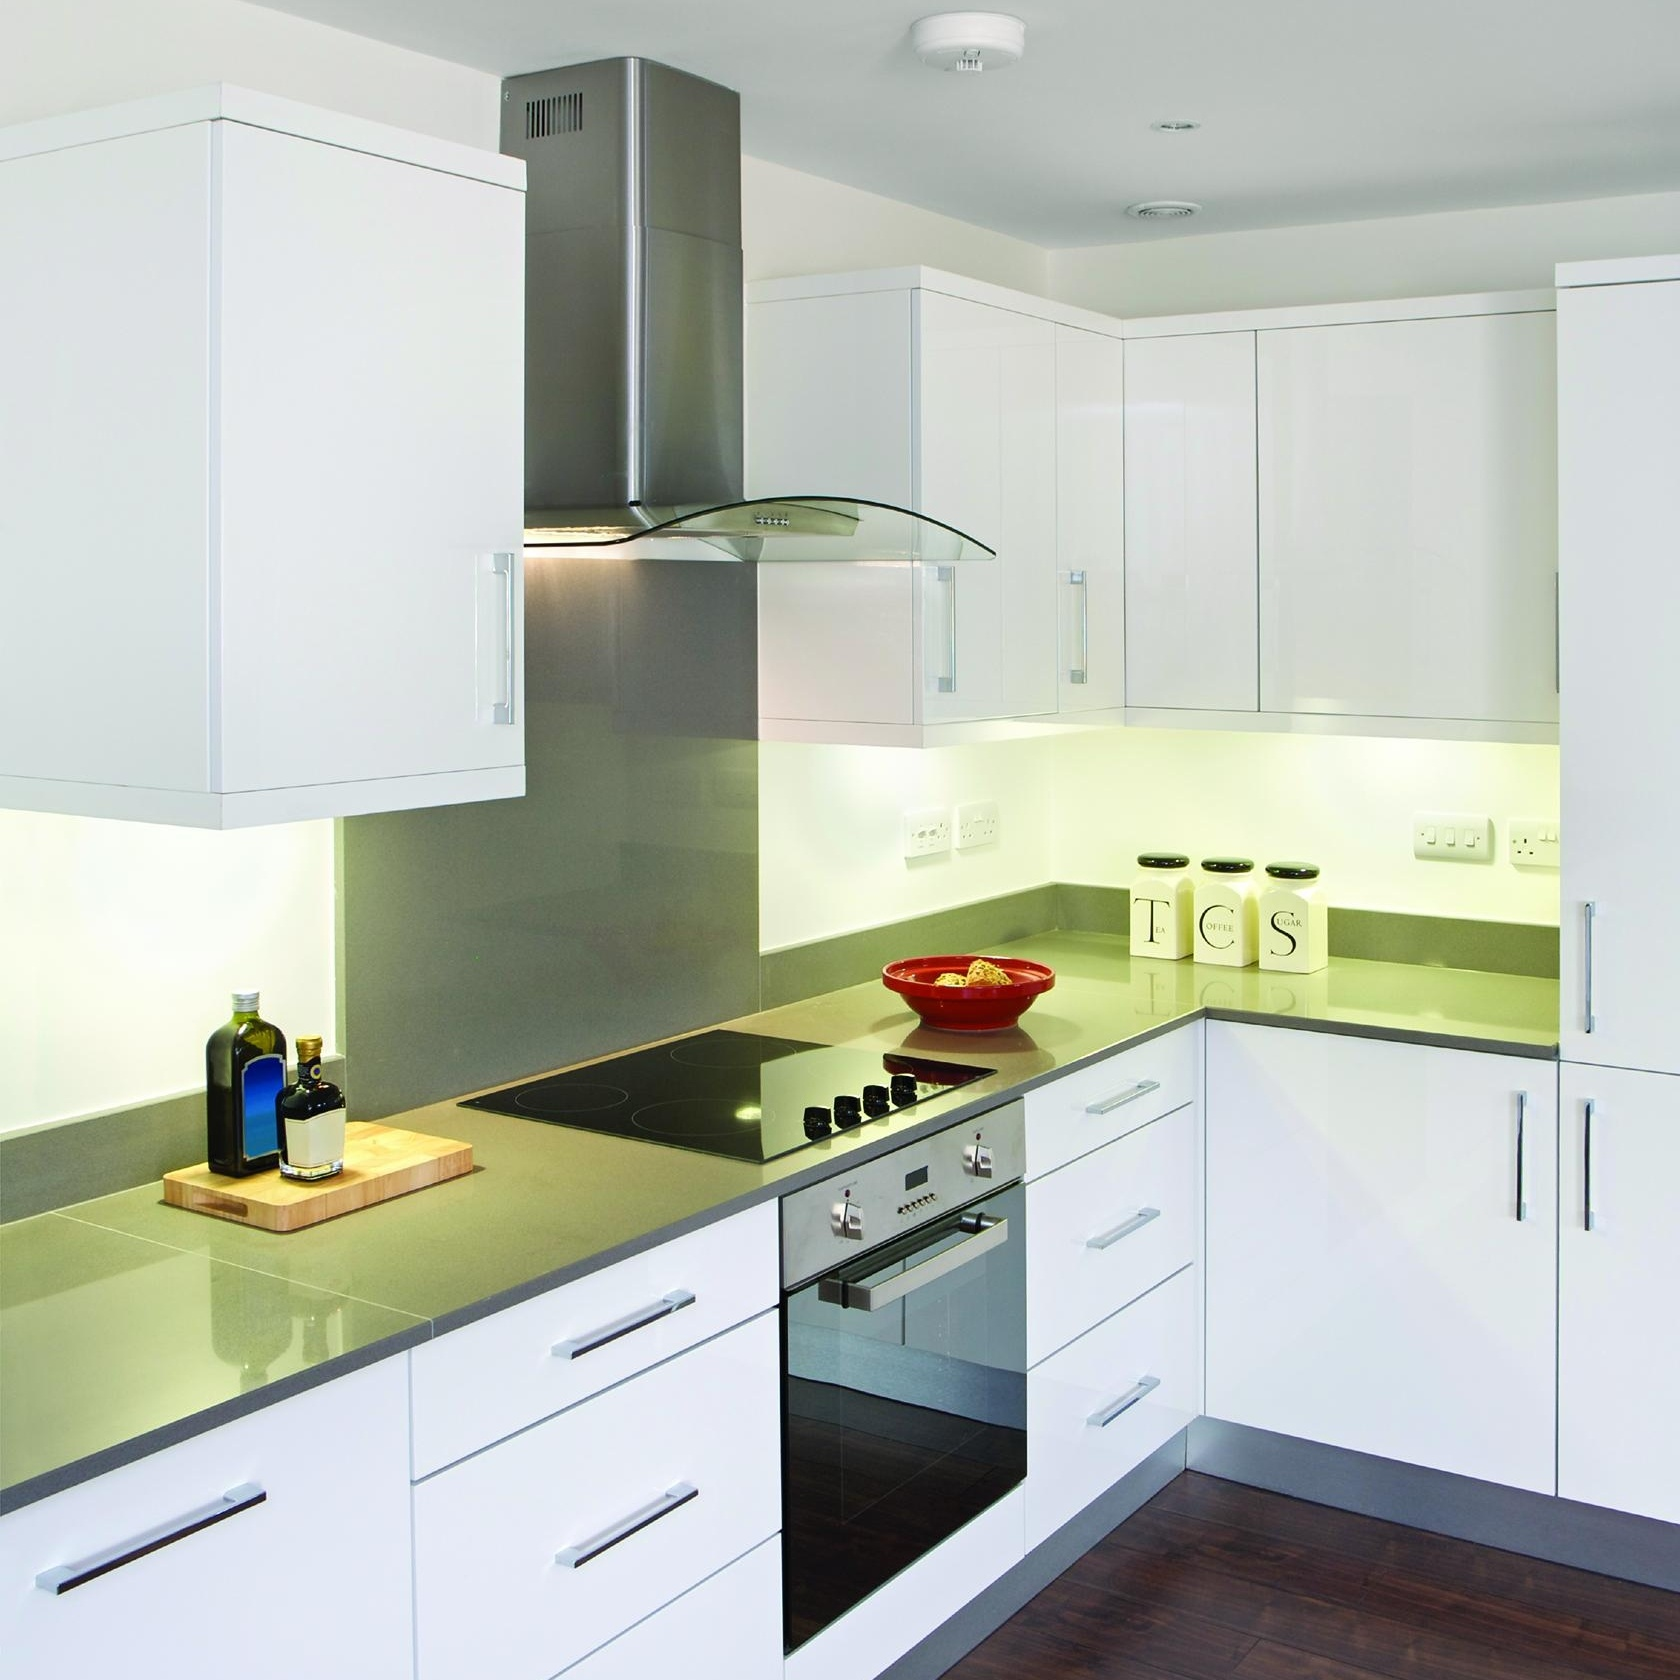 Kitchen Lighting Diy: The DIY Guide To Under Cabinet Kitchen Lighting: Part Two